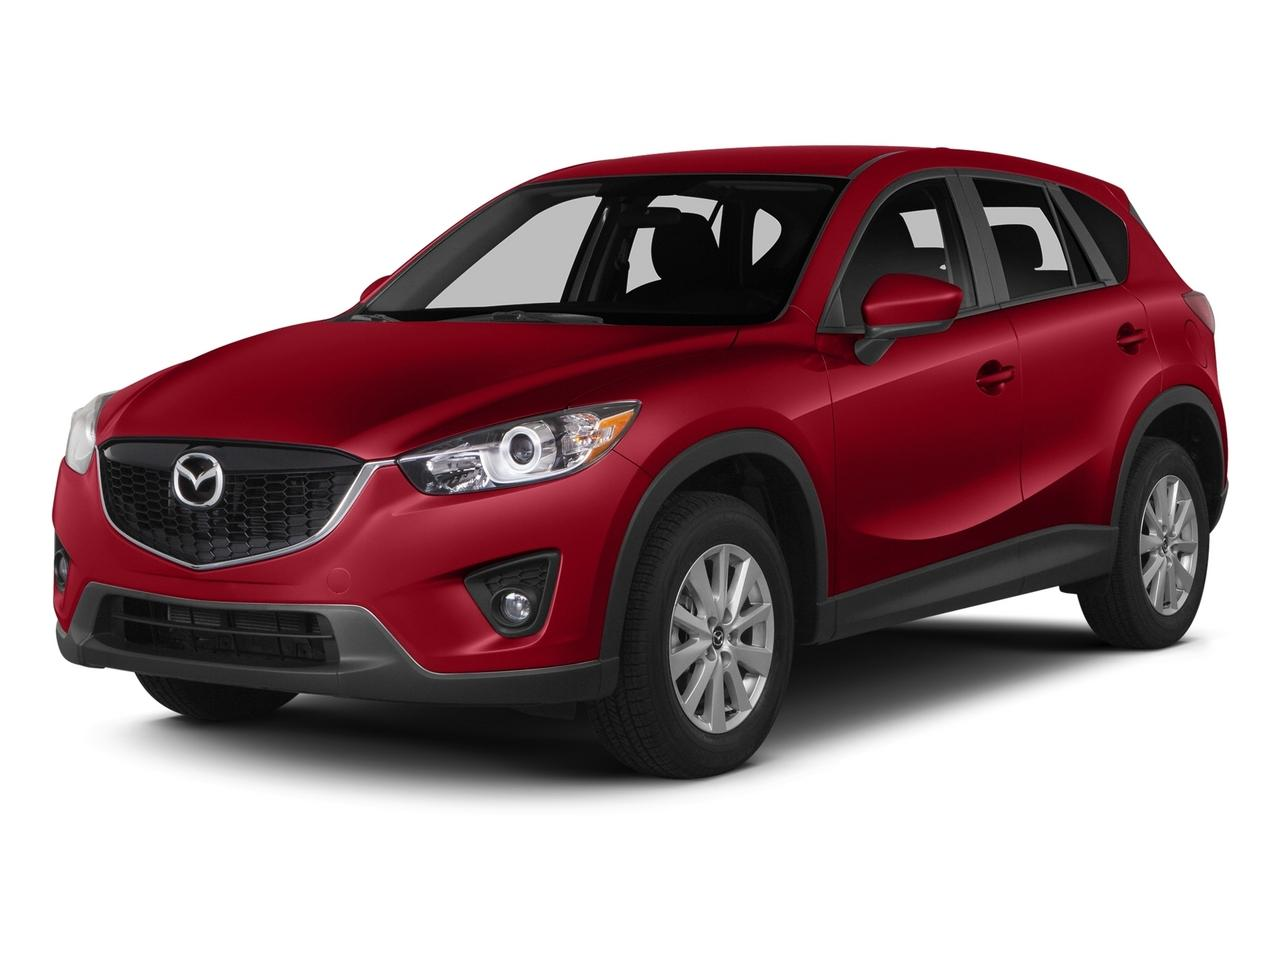 2015 Mazda CX-5 Vehicle Photo in Odessa, TX 79762